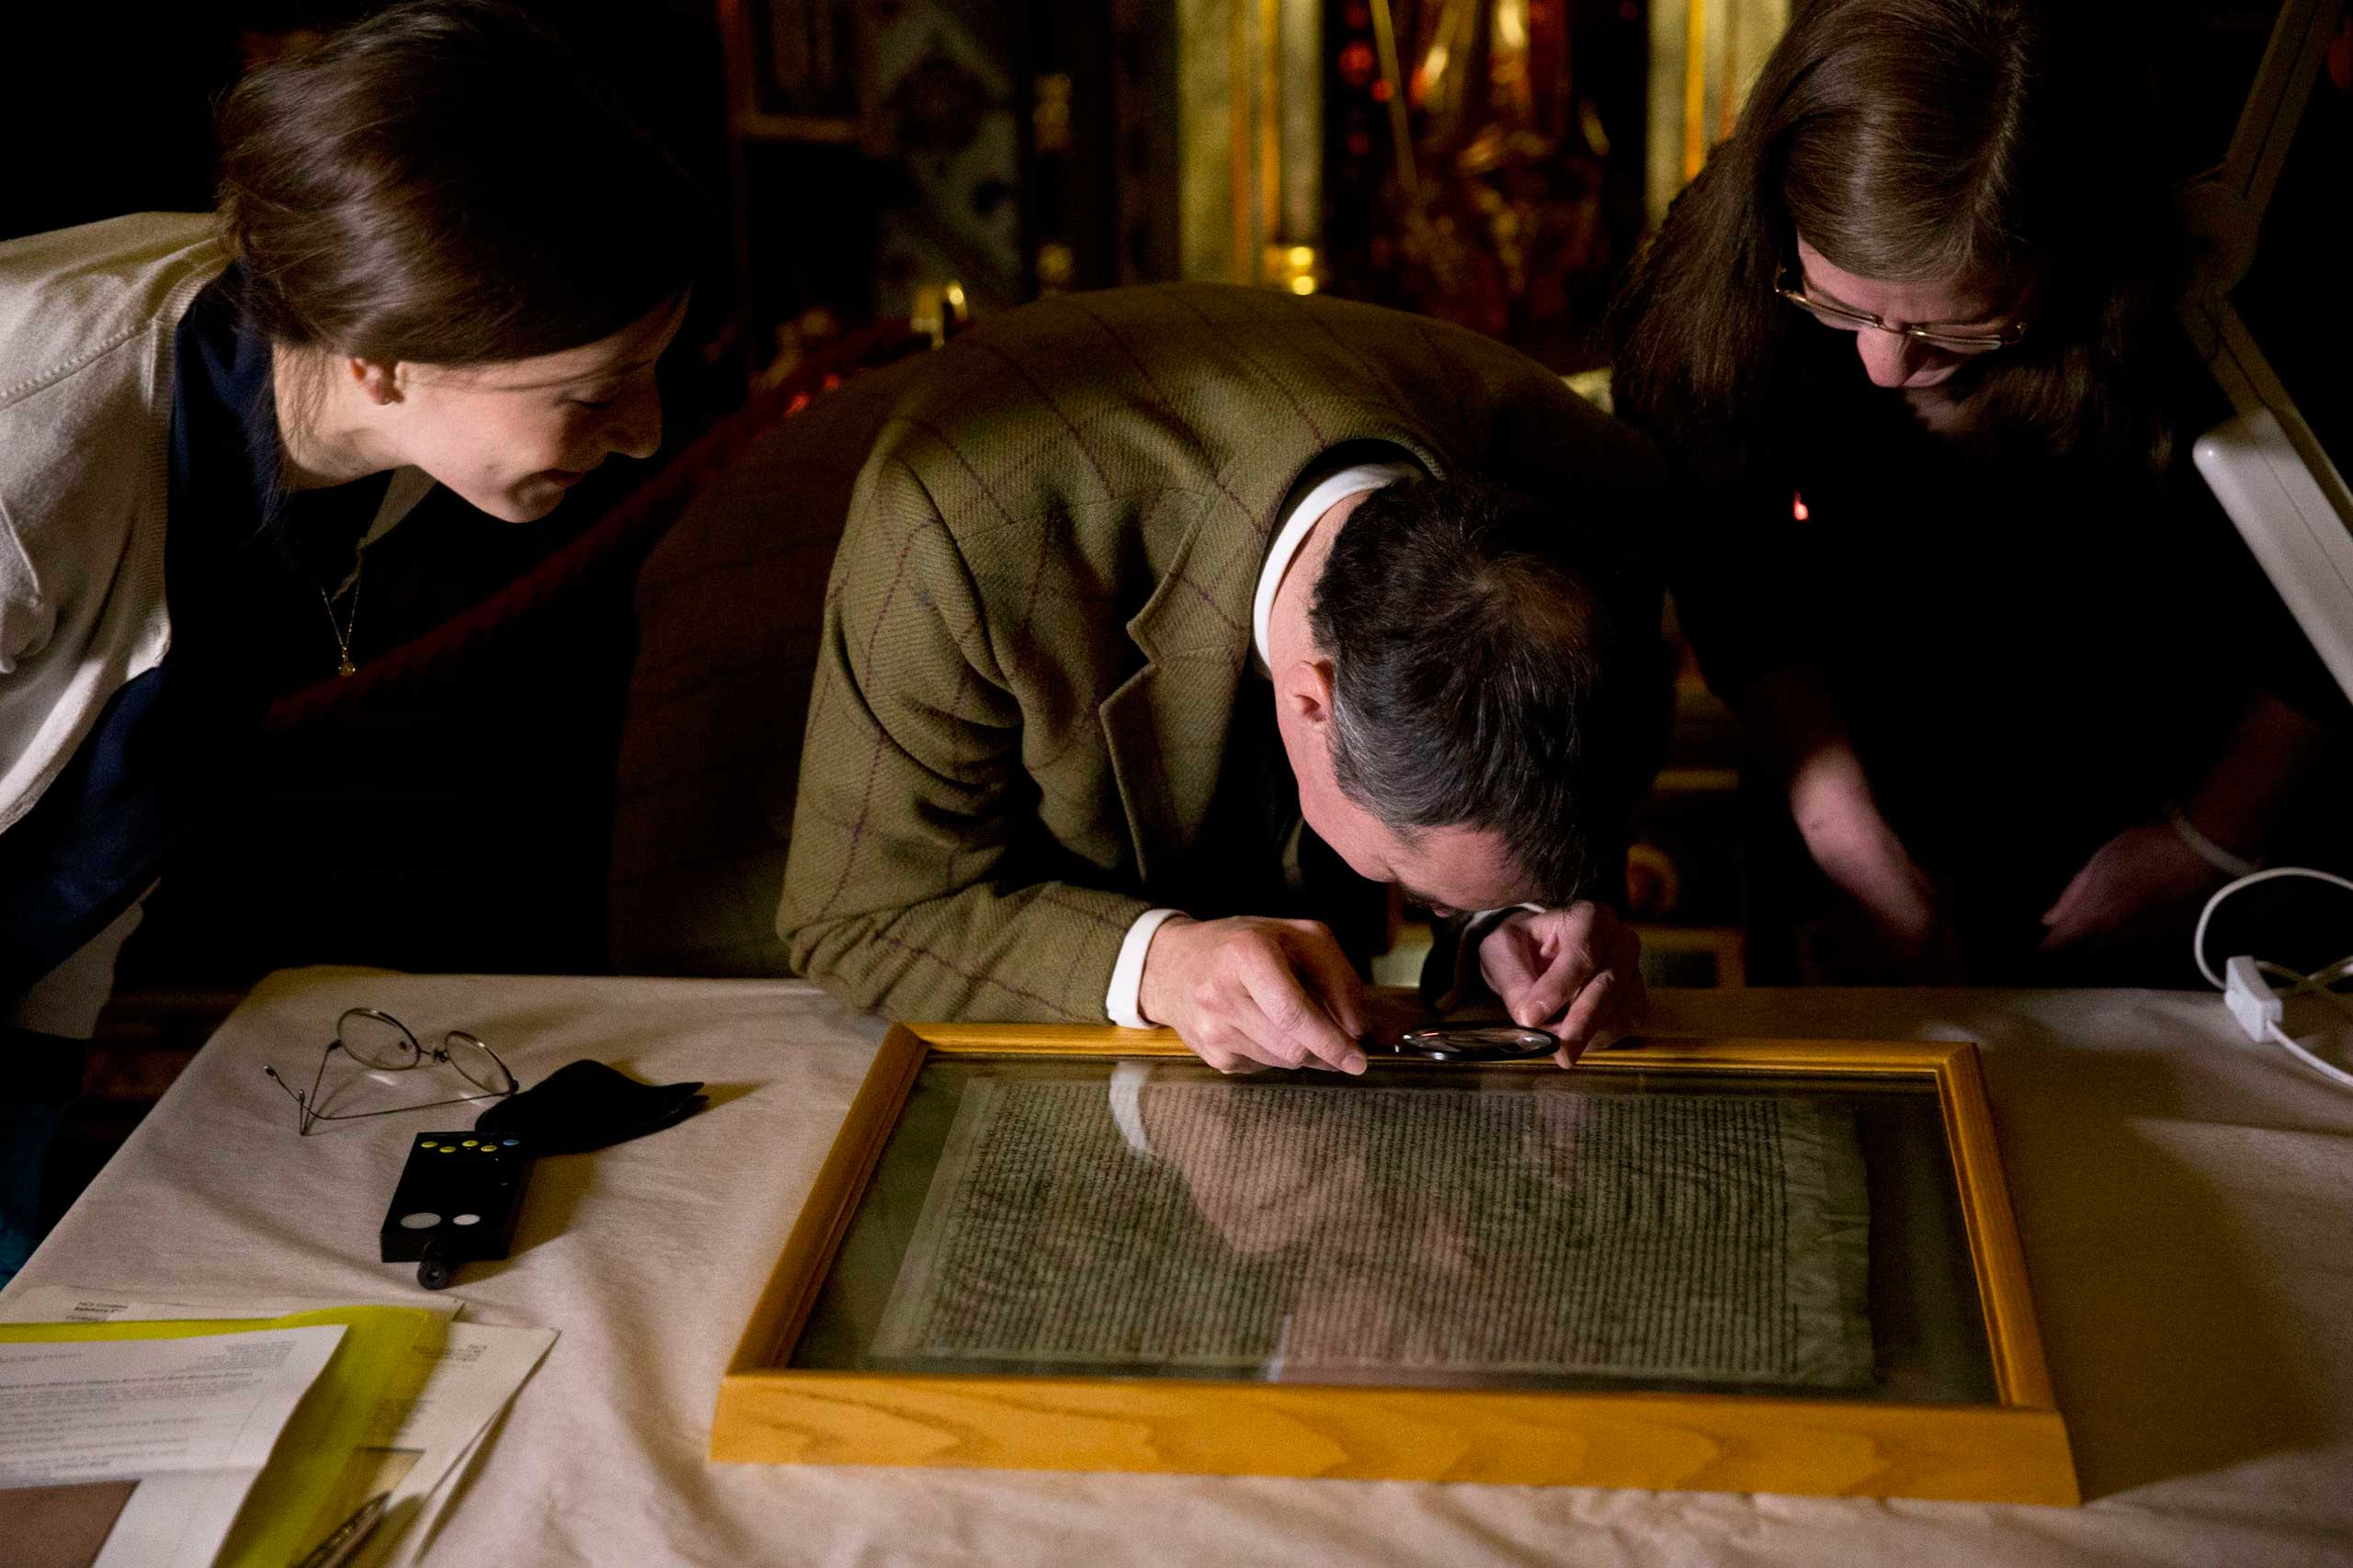 The Salisbury Cathedral copy of the Magna Carta is viewed by archivists before being displayed alongside the other three surviving original parchment engrossments of the Magna Carta, as they are displayed to mark the 800th anniversary of the sealing of the Magna Carta in 1215, in the Queen's Robing Room at the Houses of Parliament in London on Feb. 5, 2015.